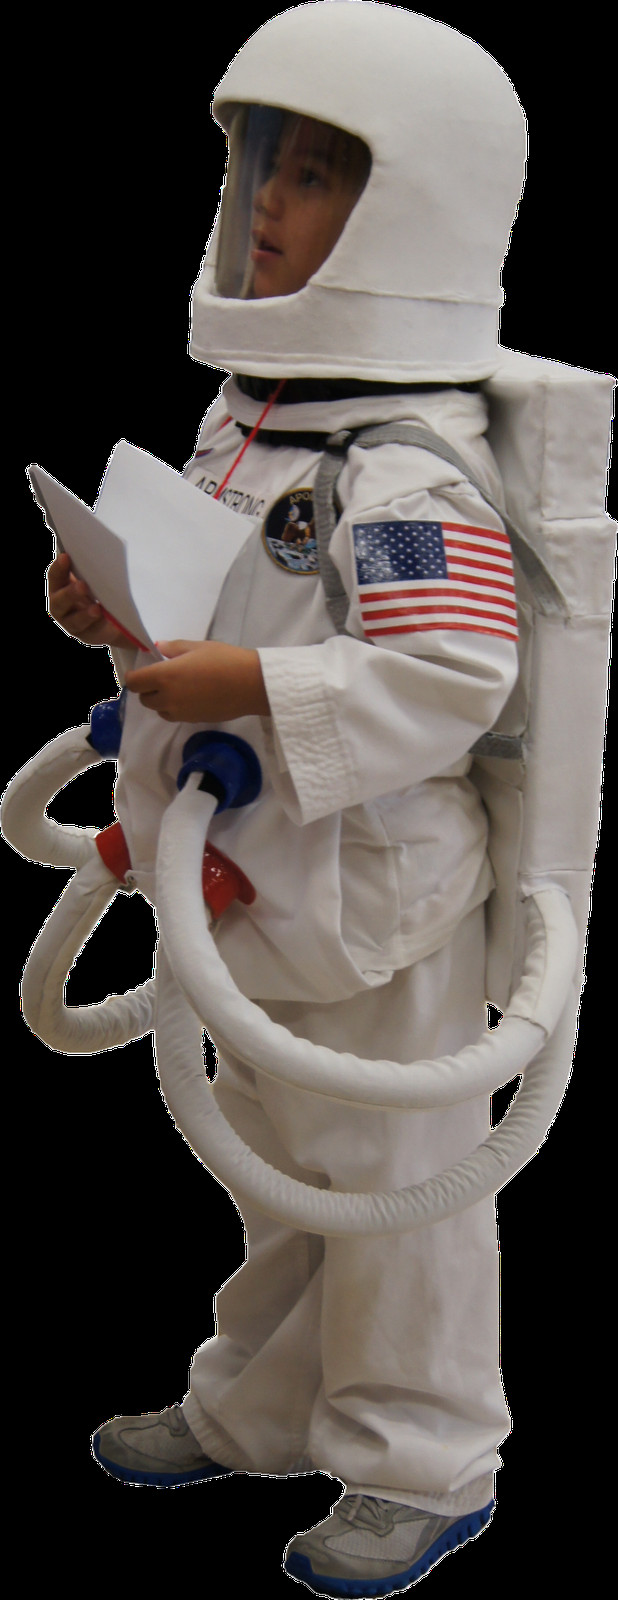 Best ideas about DIY Space Costume . Save or Pin ivetastic DIY armstrong astronaut suit Now.